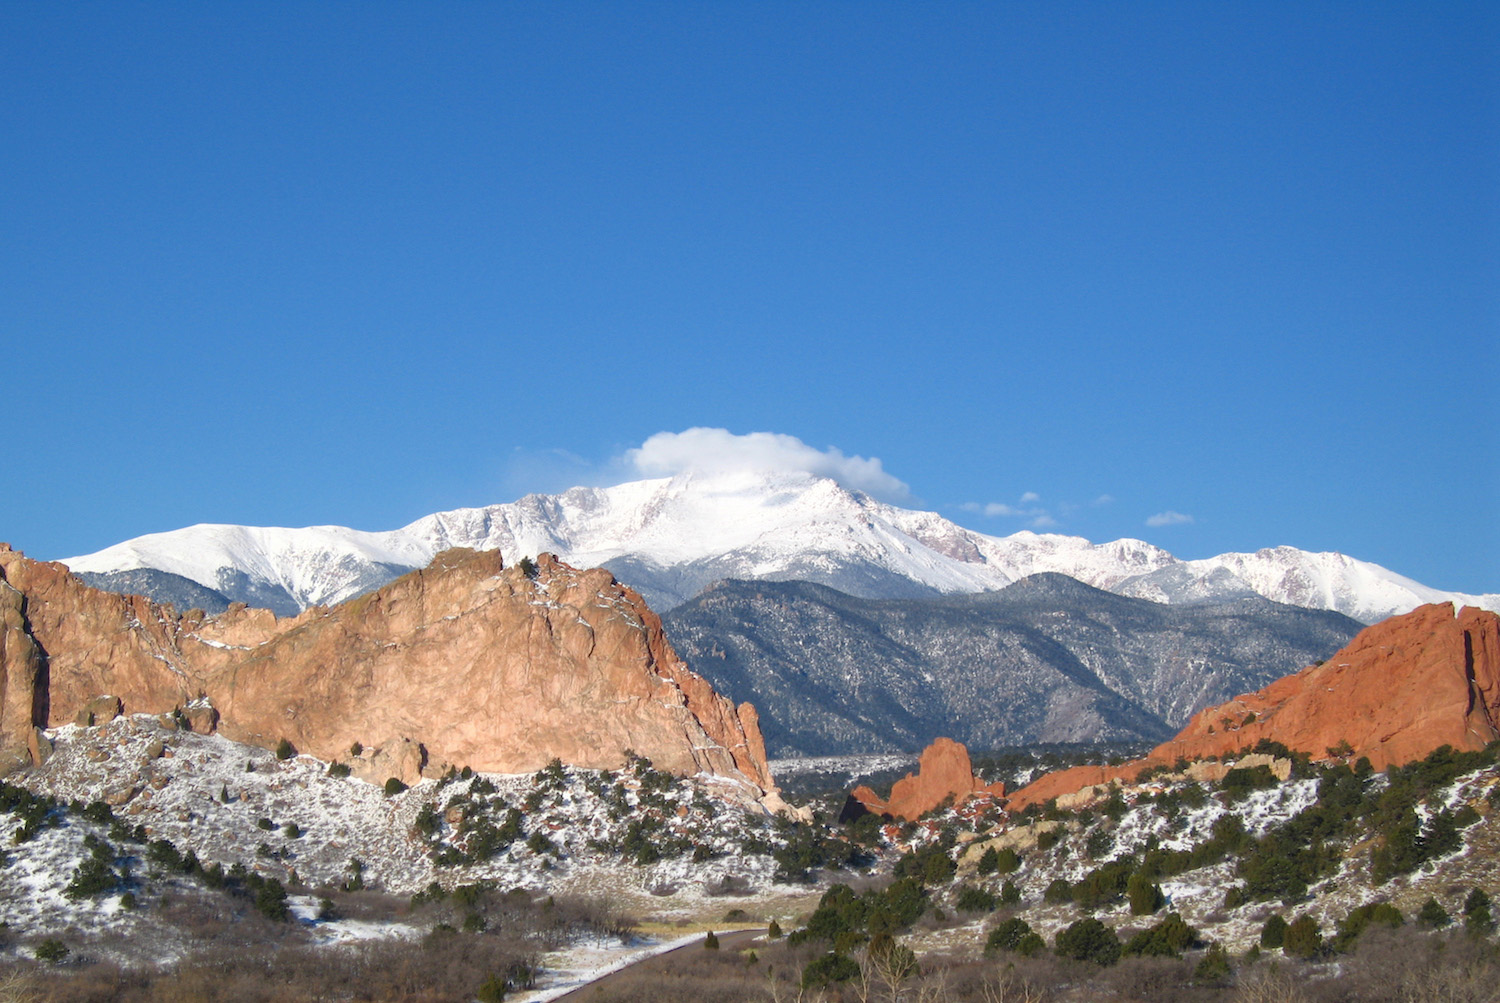 5 Colorado Cities For Your Bucket List